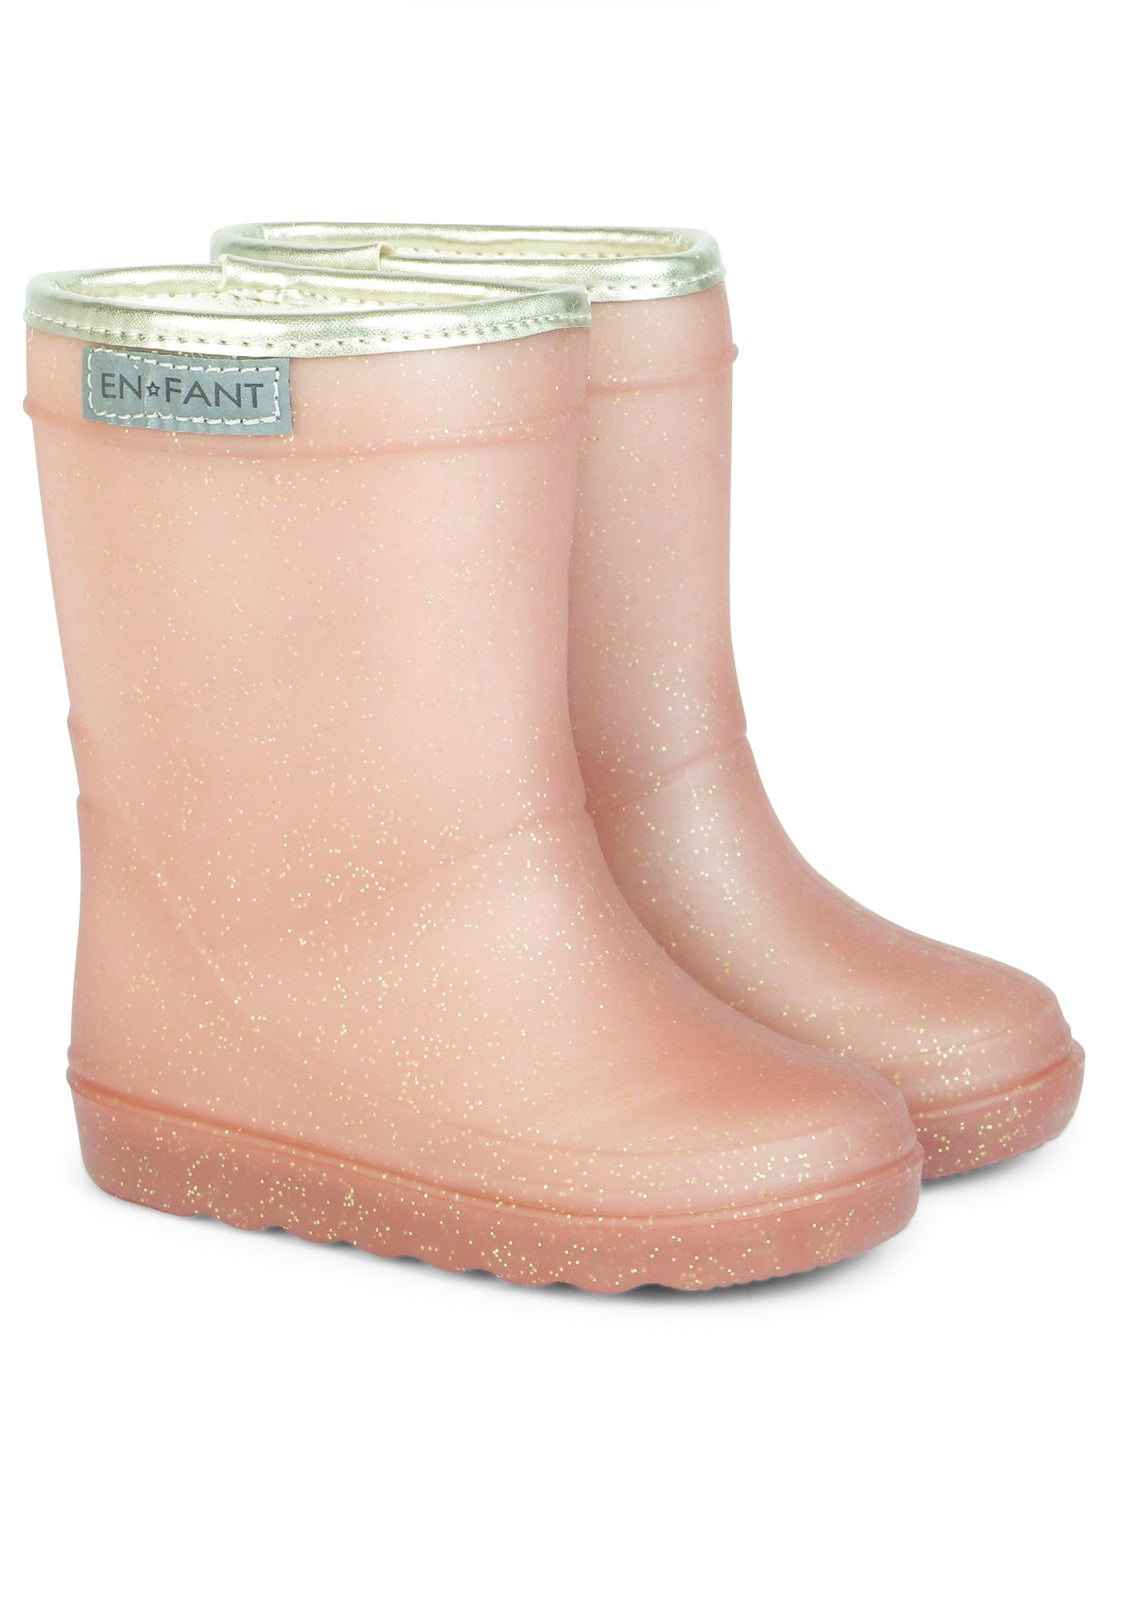 ***NEW*** Cameo Rose Pink Glitter Wellies / Gumboots, by EN FANT